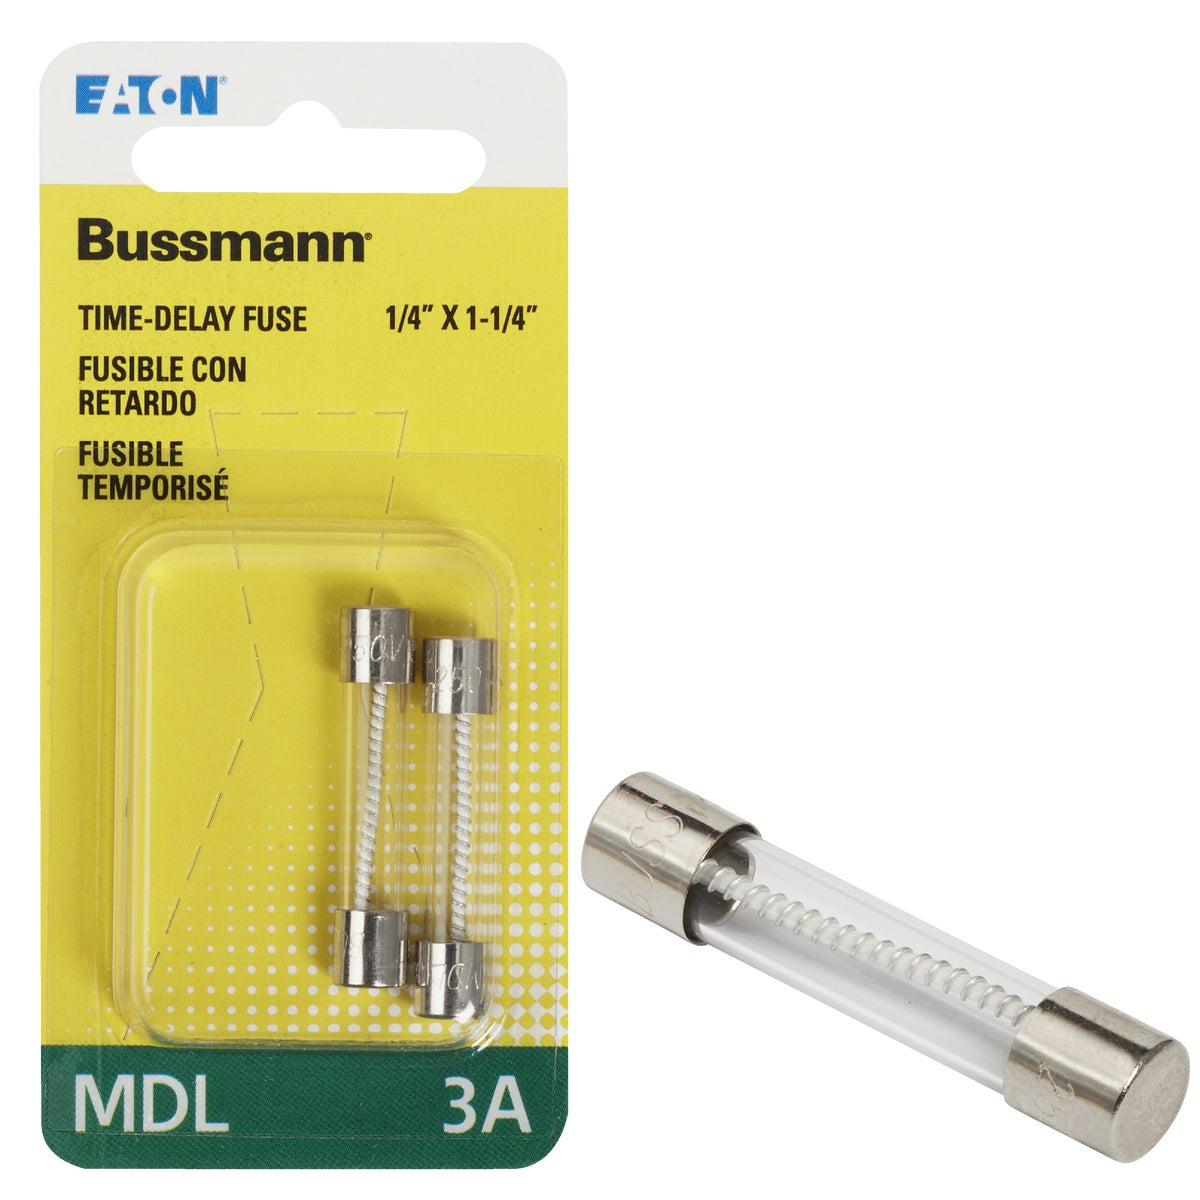 3A ELECTRONIC FUSE